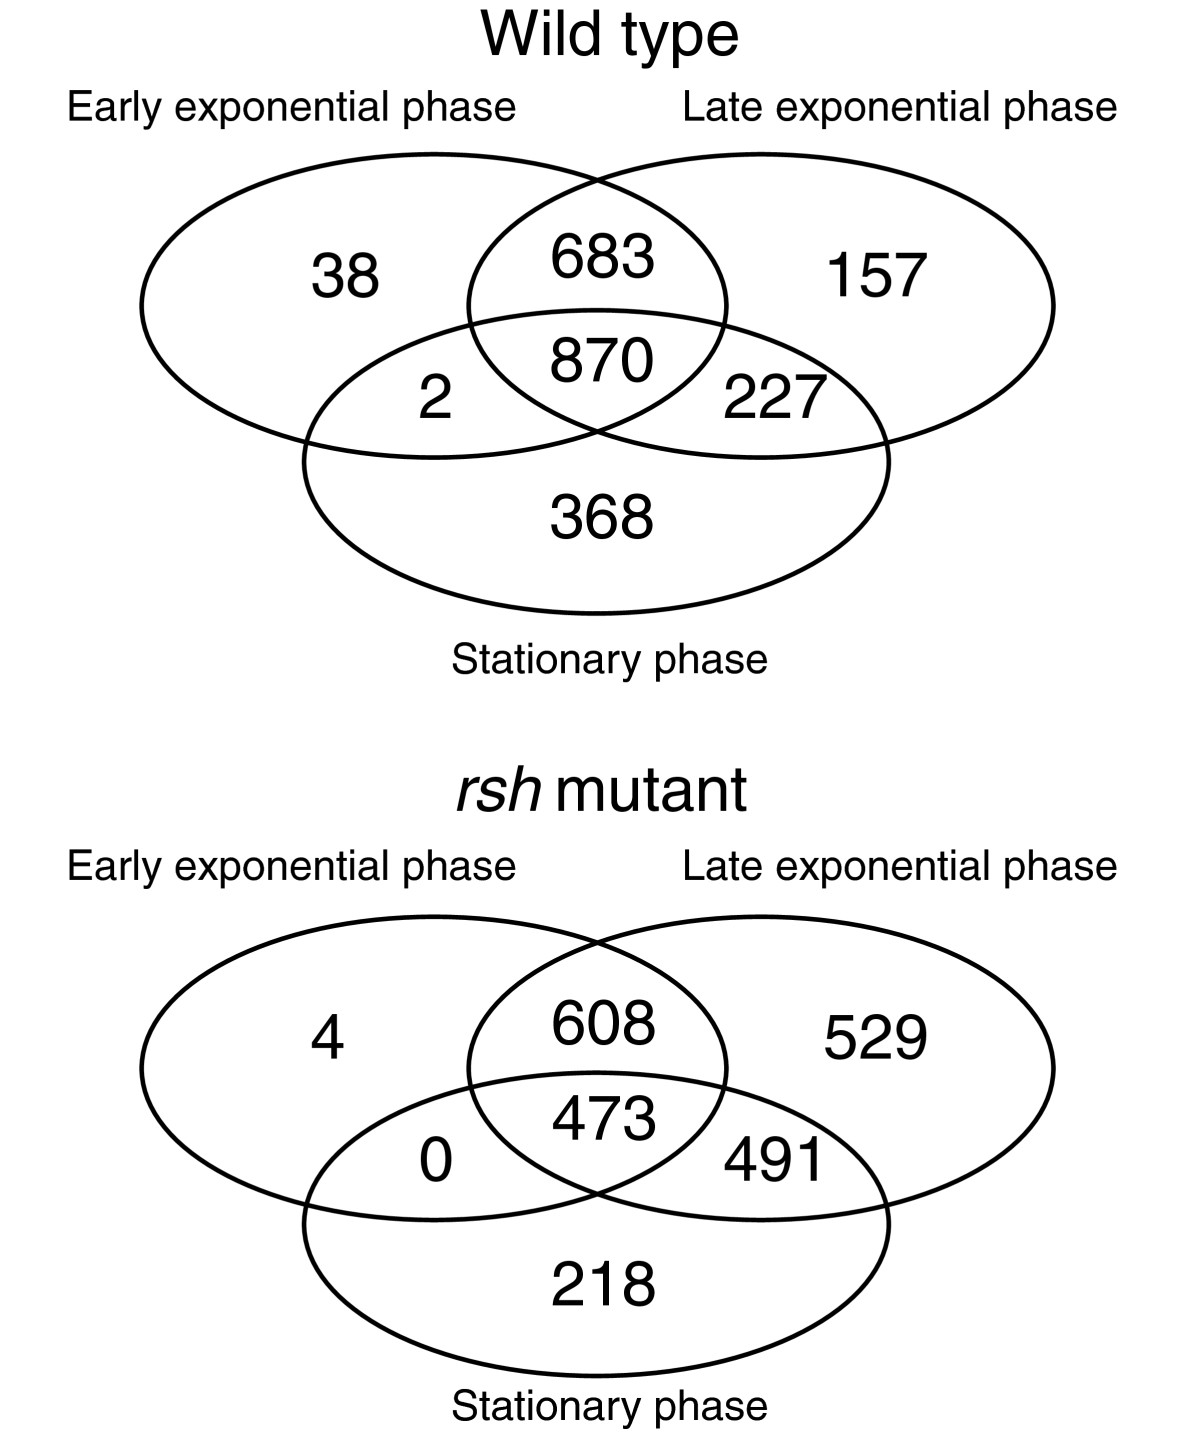 https://static-content.springer.com/image/art%3A10.1186%2Fgb-2011-12-2-r17/MediaObjects/13059_2010_Article_2487_Fig1_HTML.jpg